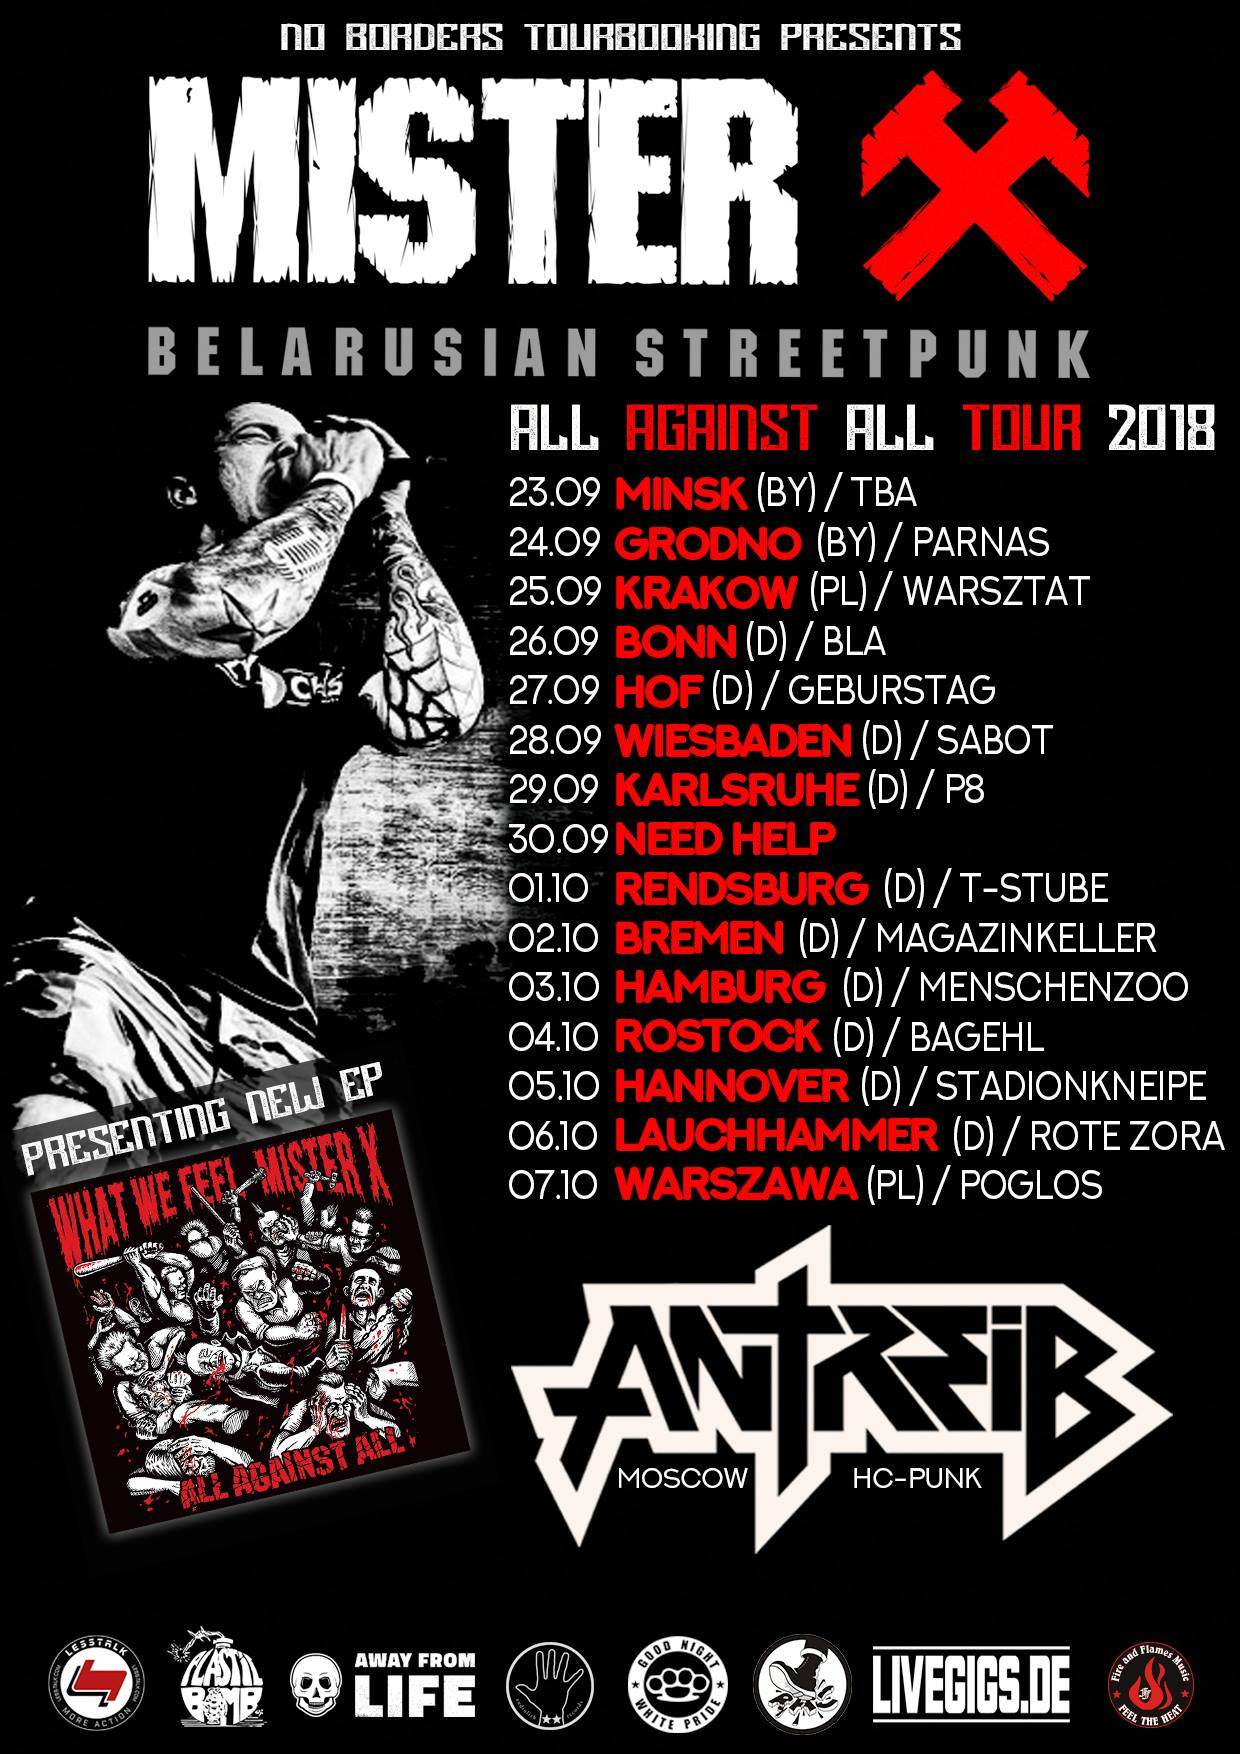 Mister X - Antireb - Europa-Tour 2018